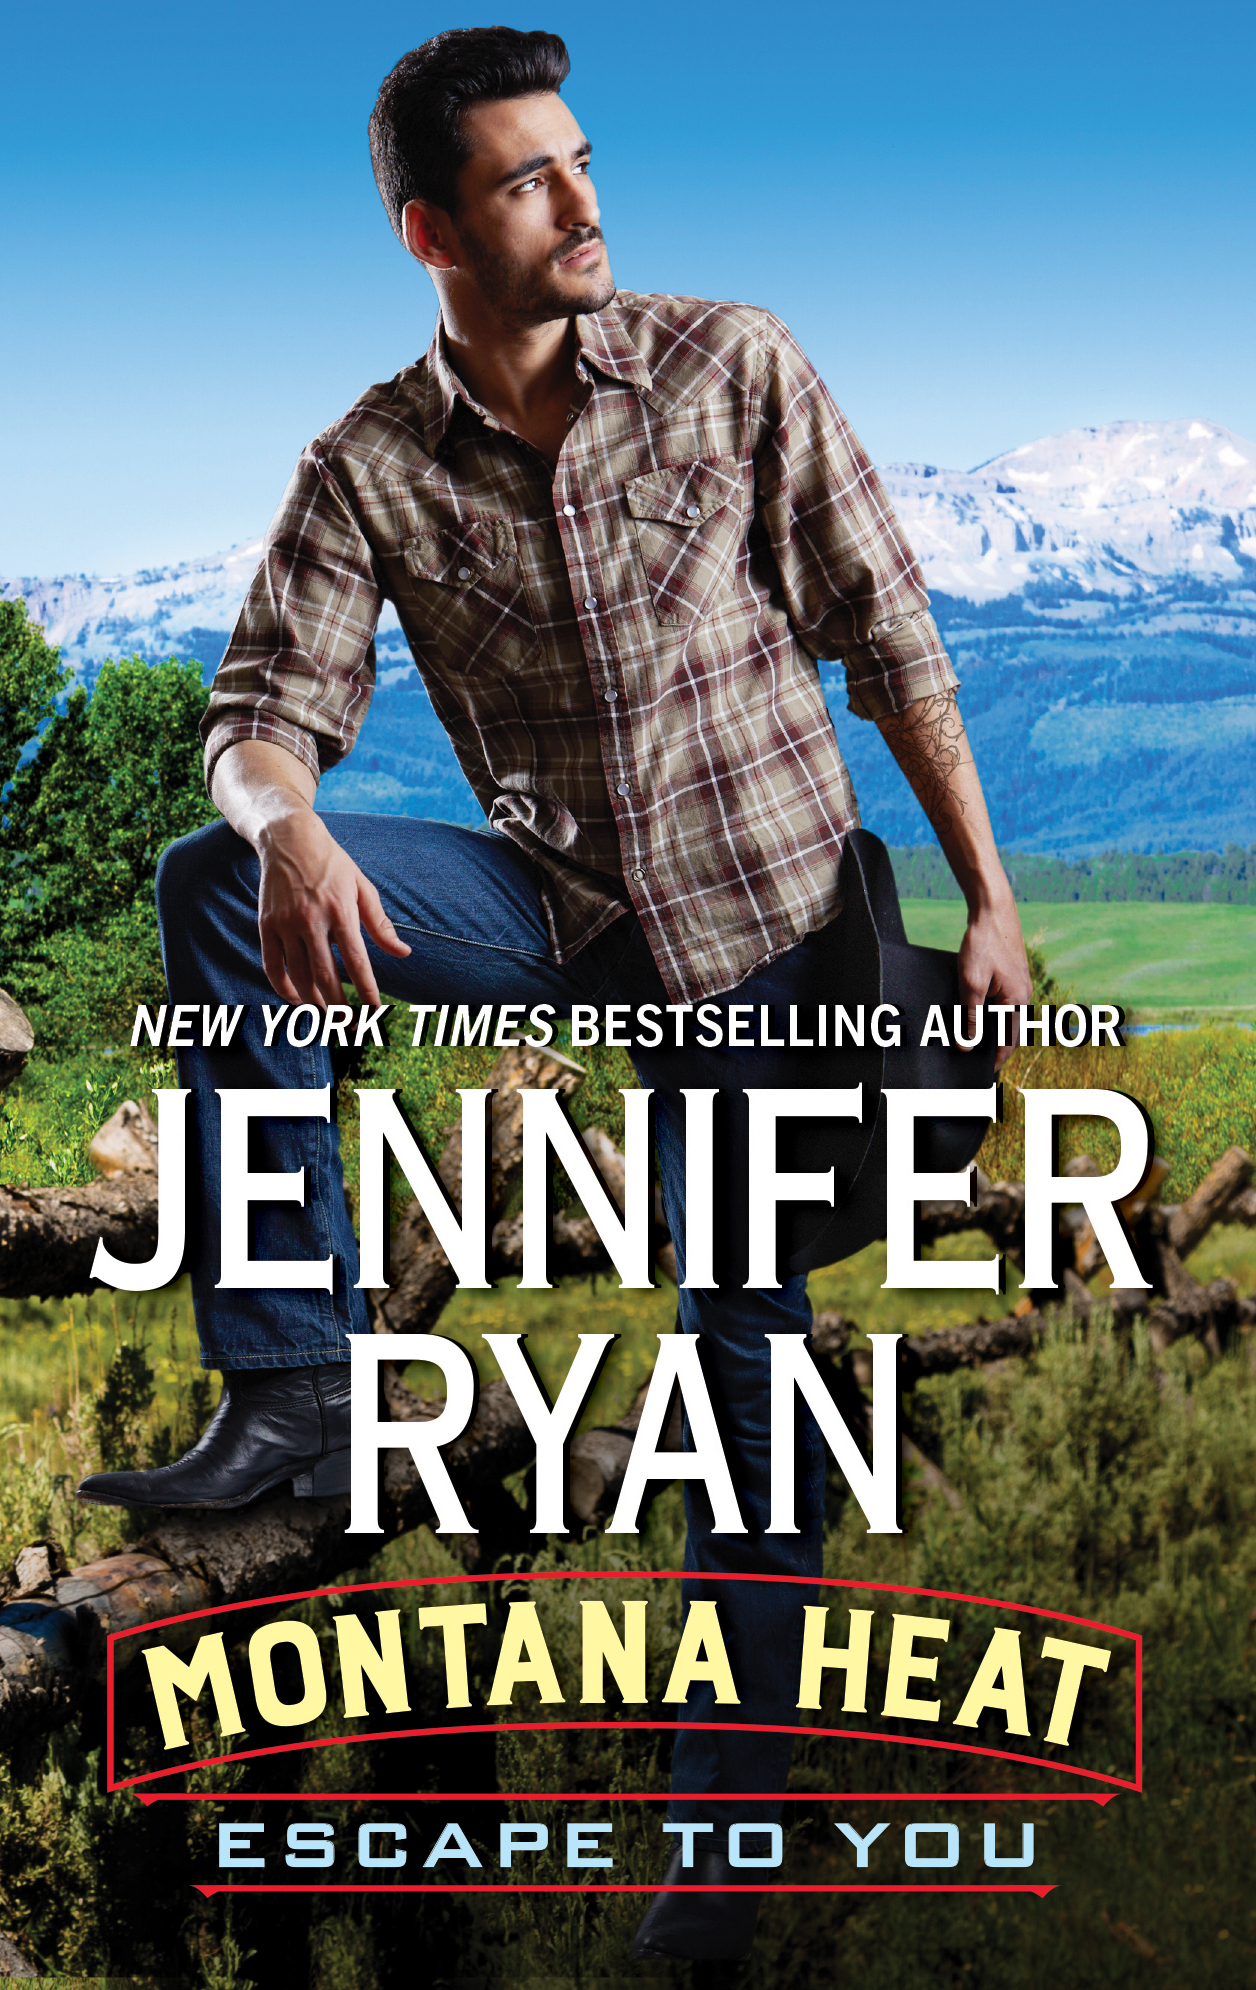 Blog Tour & Review: Montana Heat: Escape To You by Jennifer Ryan